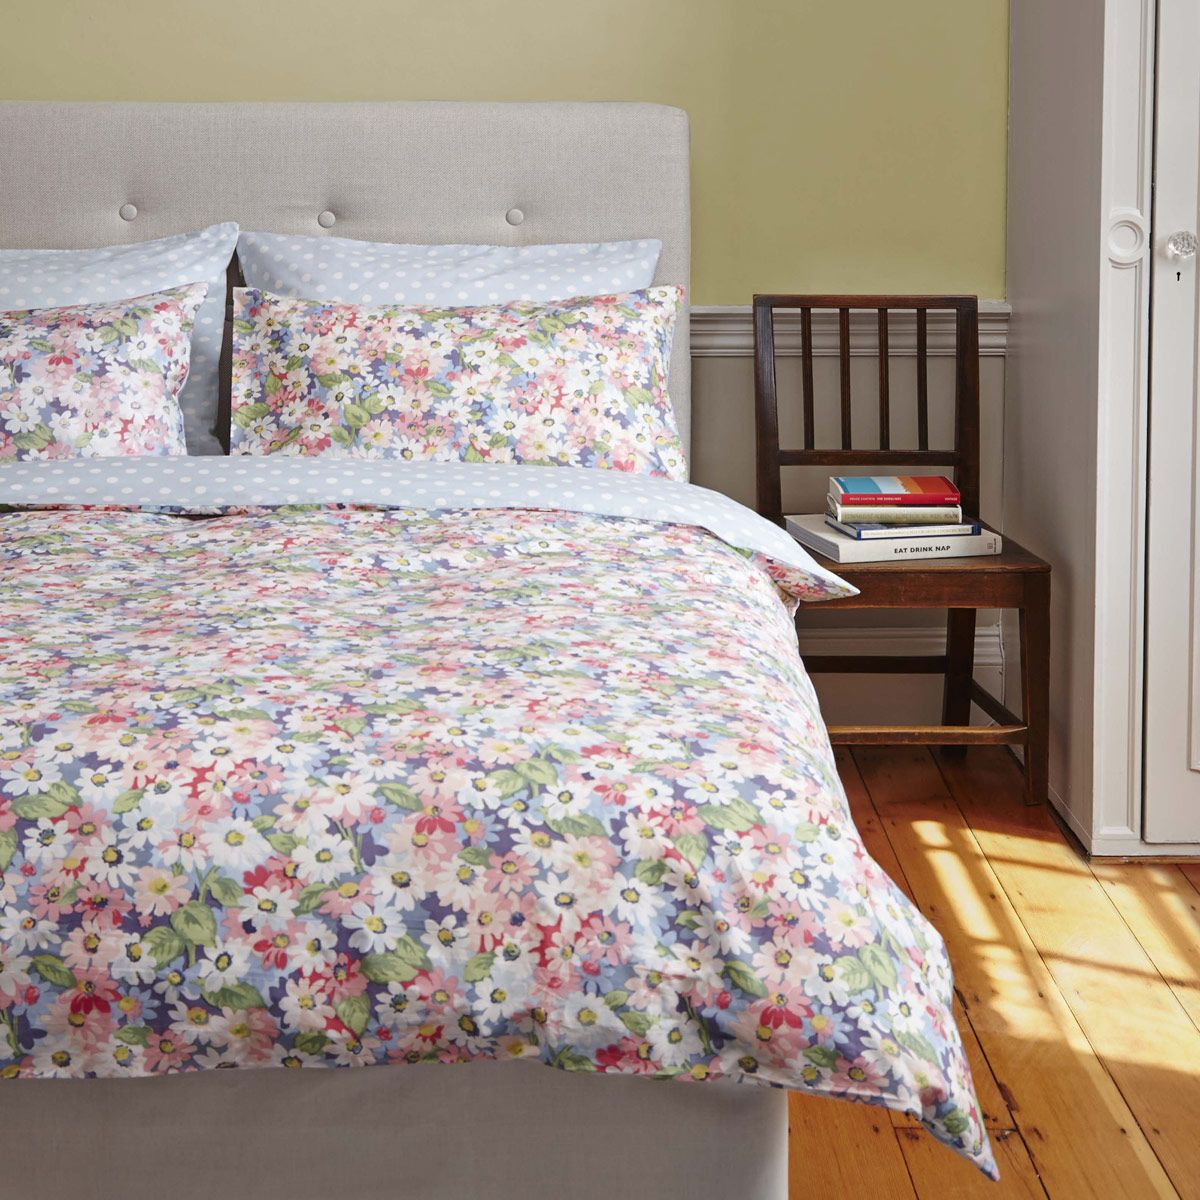 Painted daisy bedding bedding ranges cathkidston my for Cath kidston style bedroom ideas